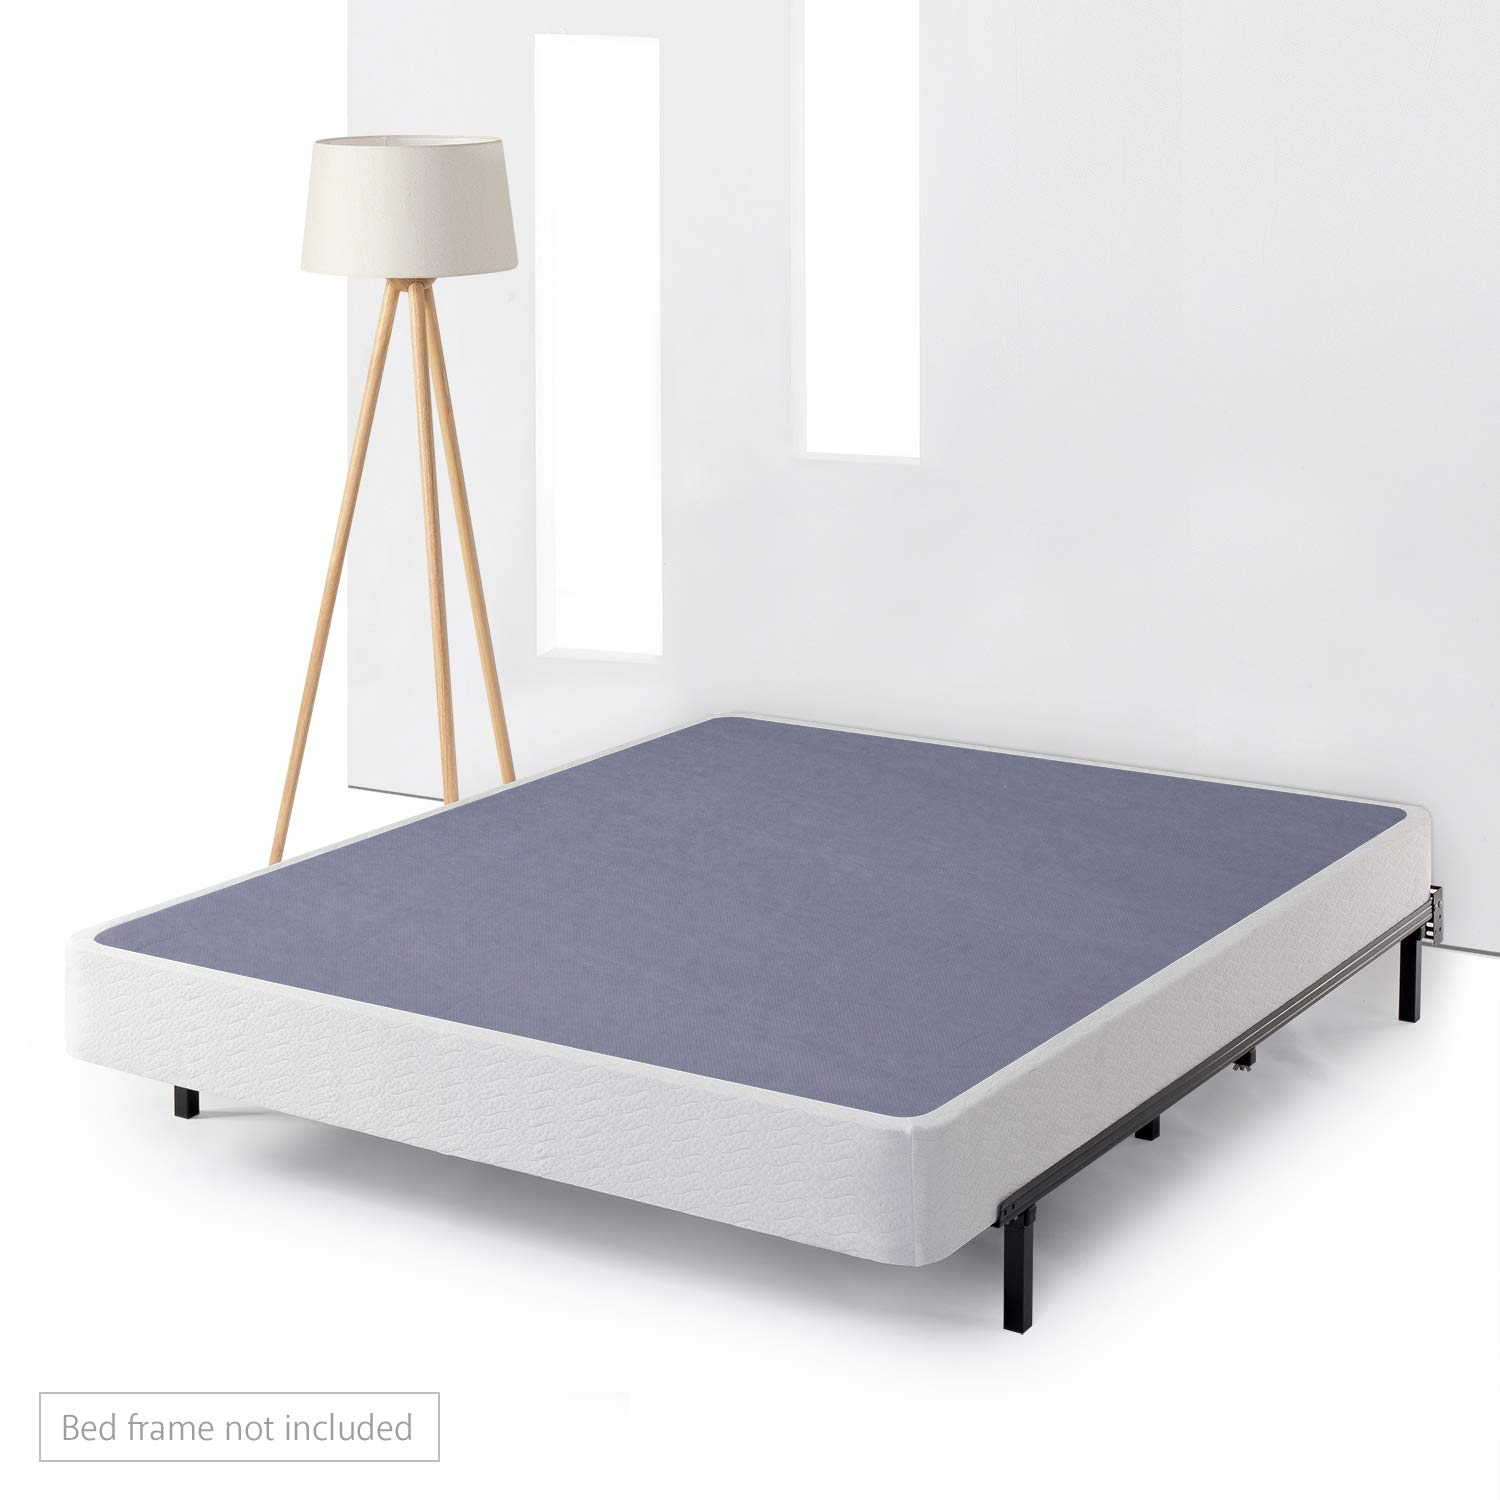 Best Price Mattress Heavy Duty Steel Low Profile Box Spring/Mattress Foundation/Easy Assembly - 7 Inch, King, Navy/White